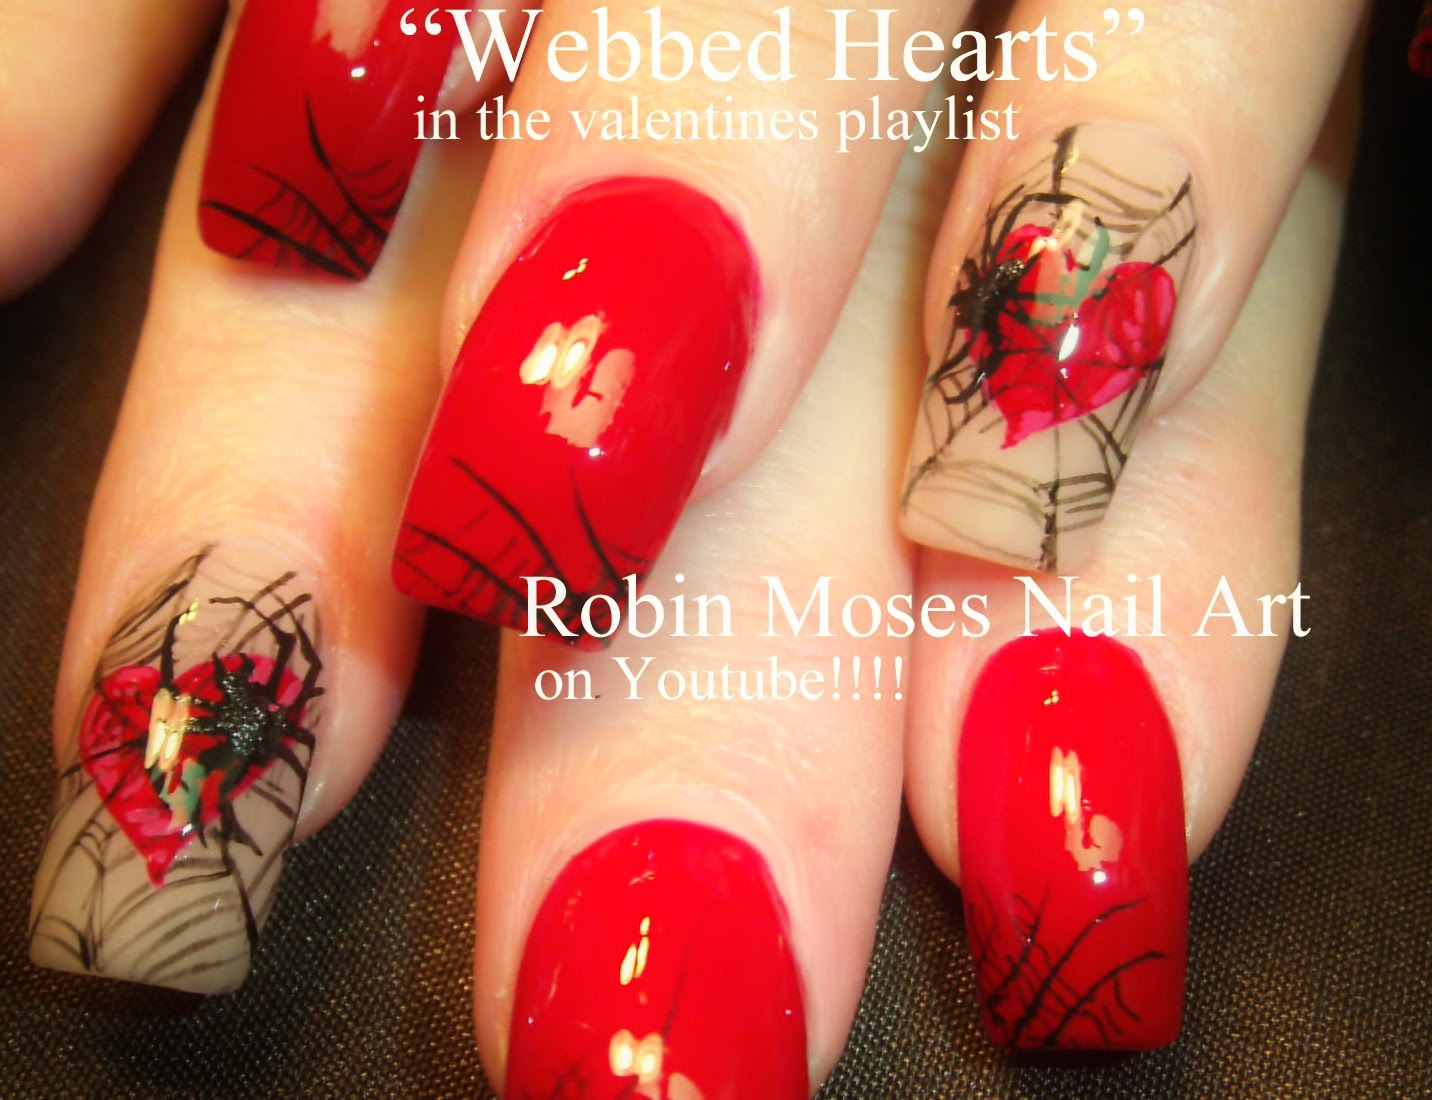 Robin moses nail art heart nails valentine nails spiderweb over 60 valentines day nail art designs to learn go here valentine nails prinsesfo Choice Image